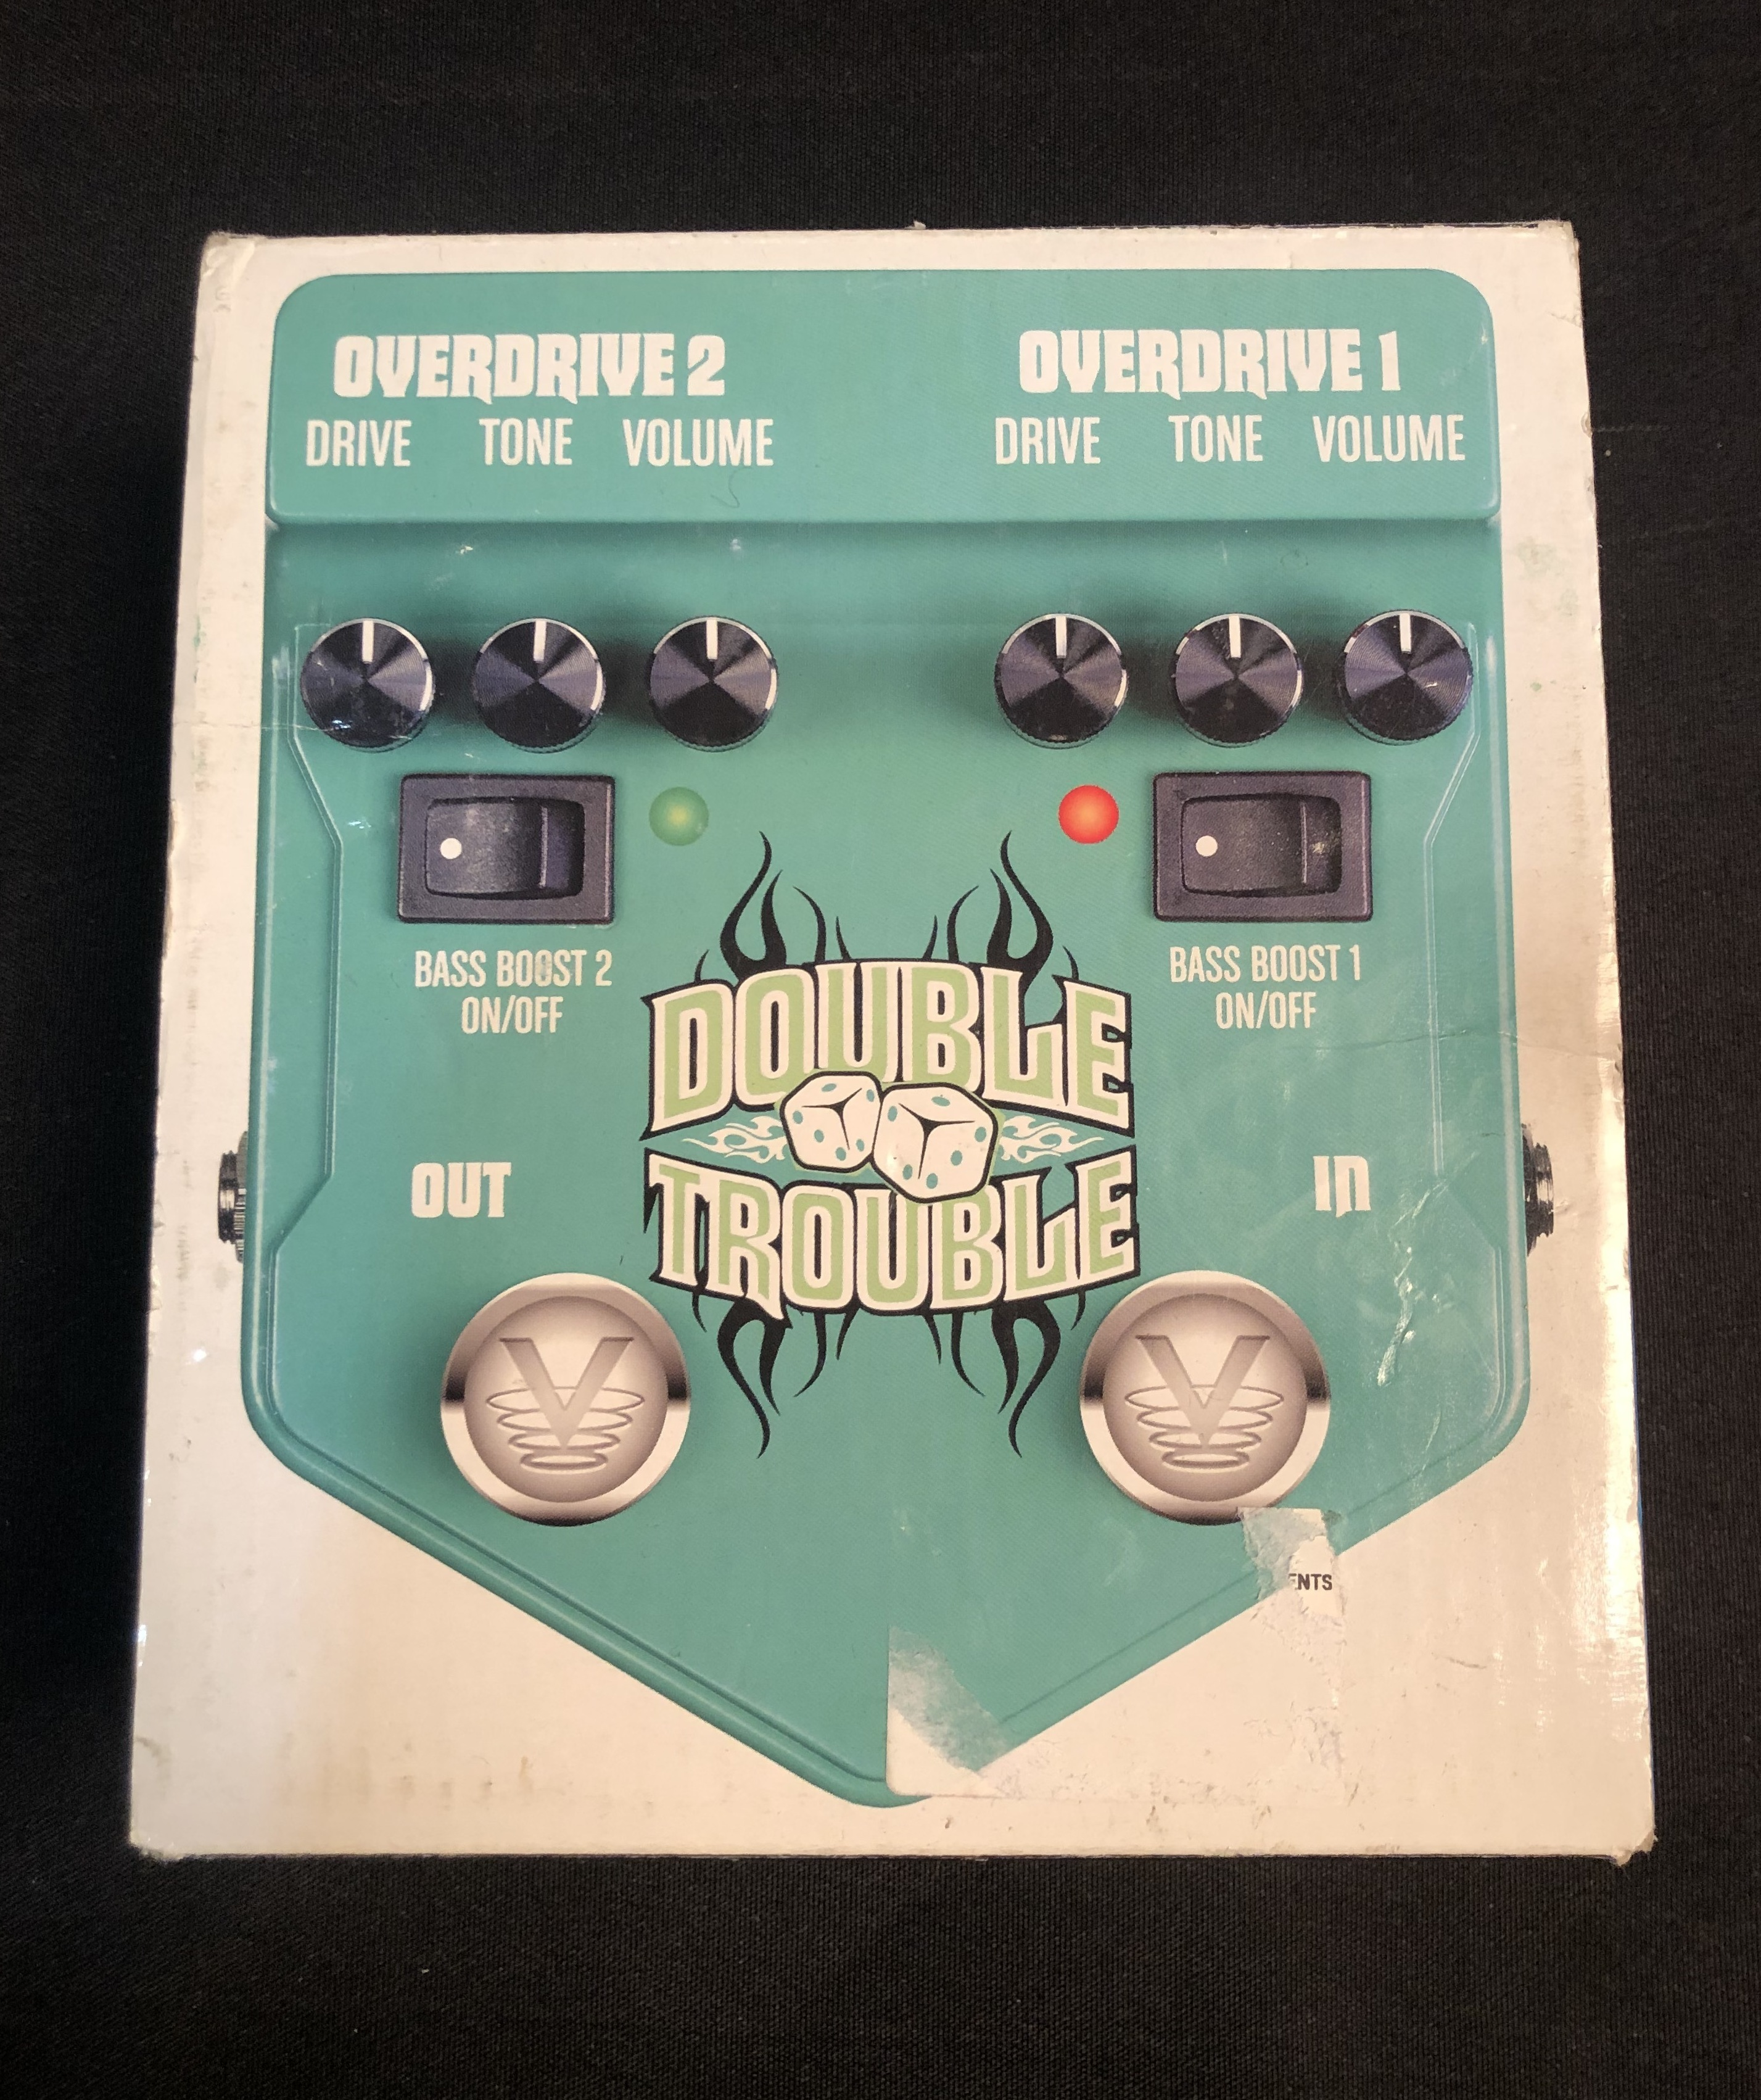 VISUAL EFFECTS - V2DT Double Trouble Dual Overdrive Pedal